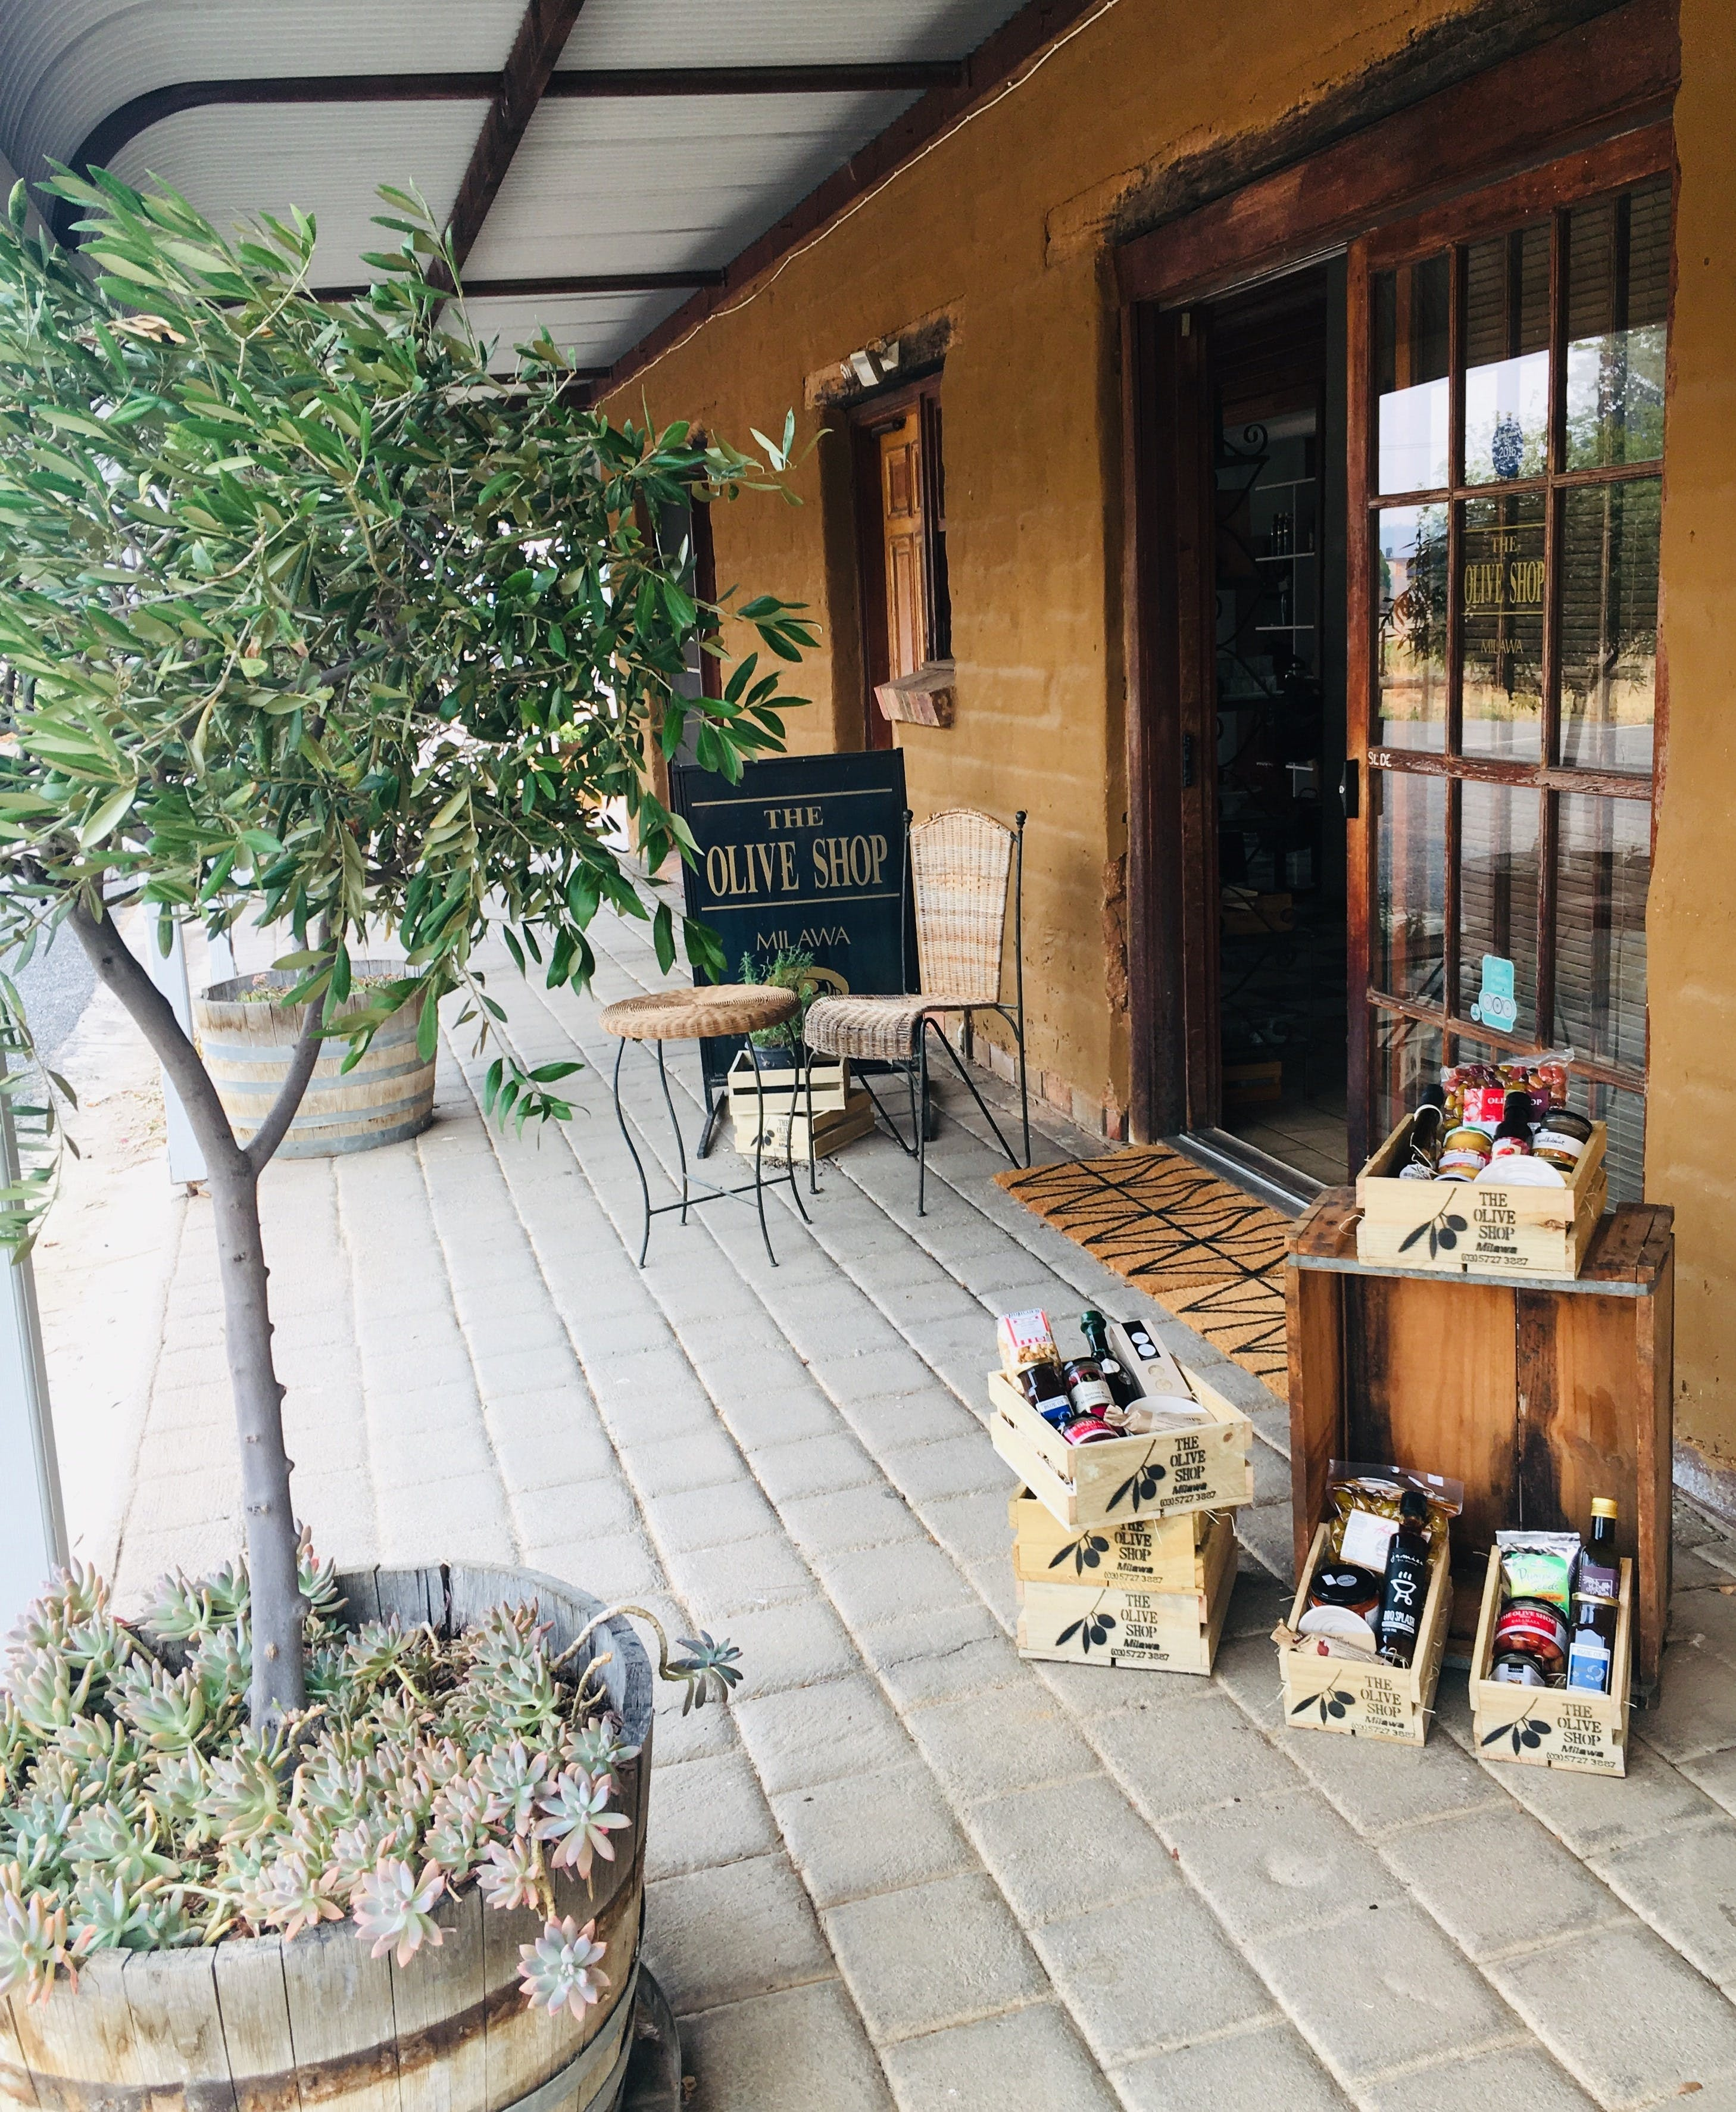 The Olive Shop - Milawa - Attractions Melbourne